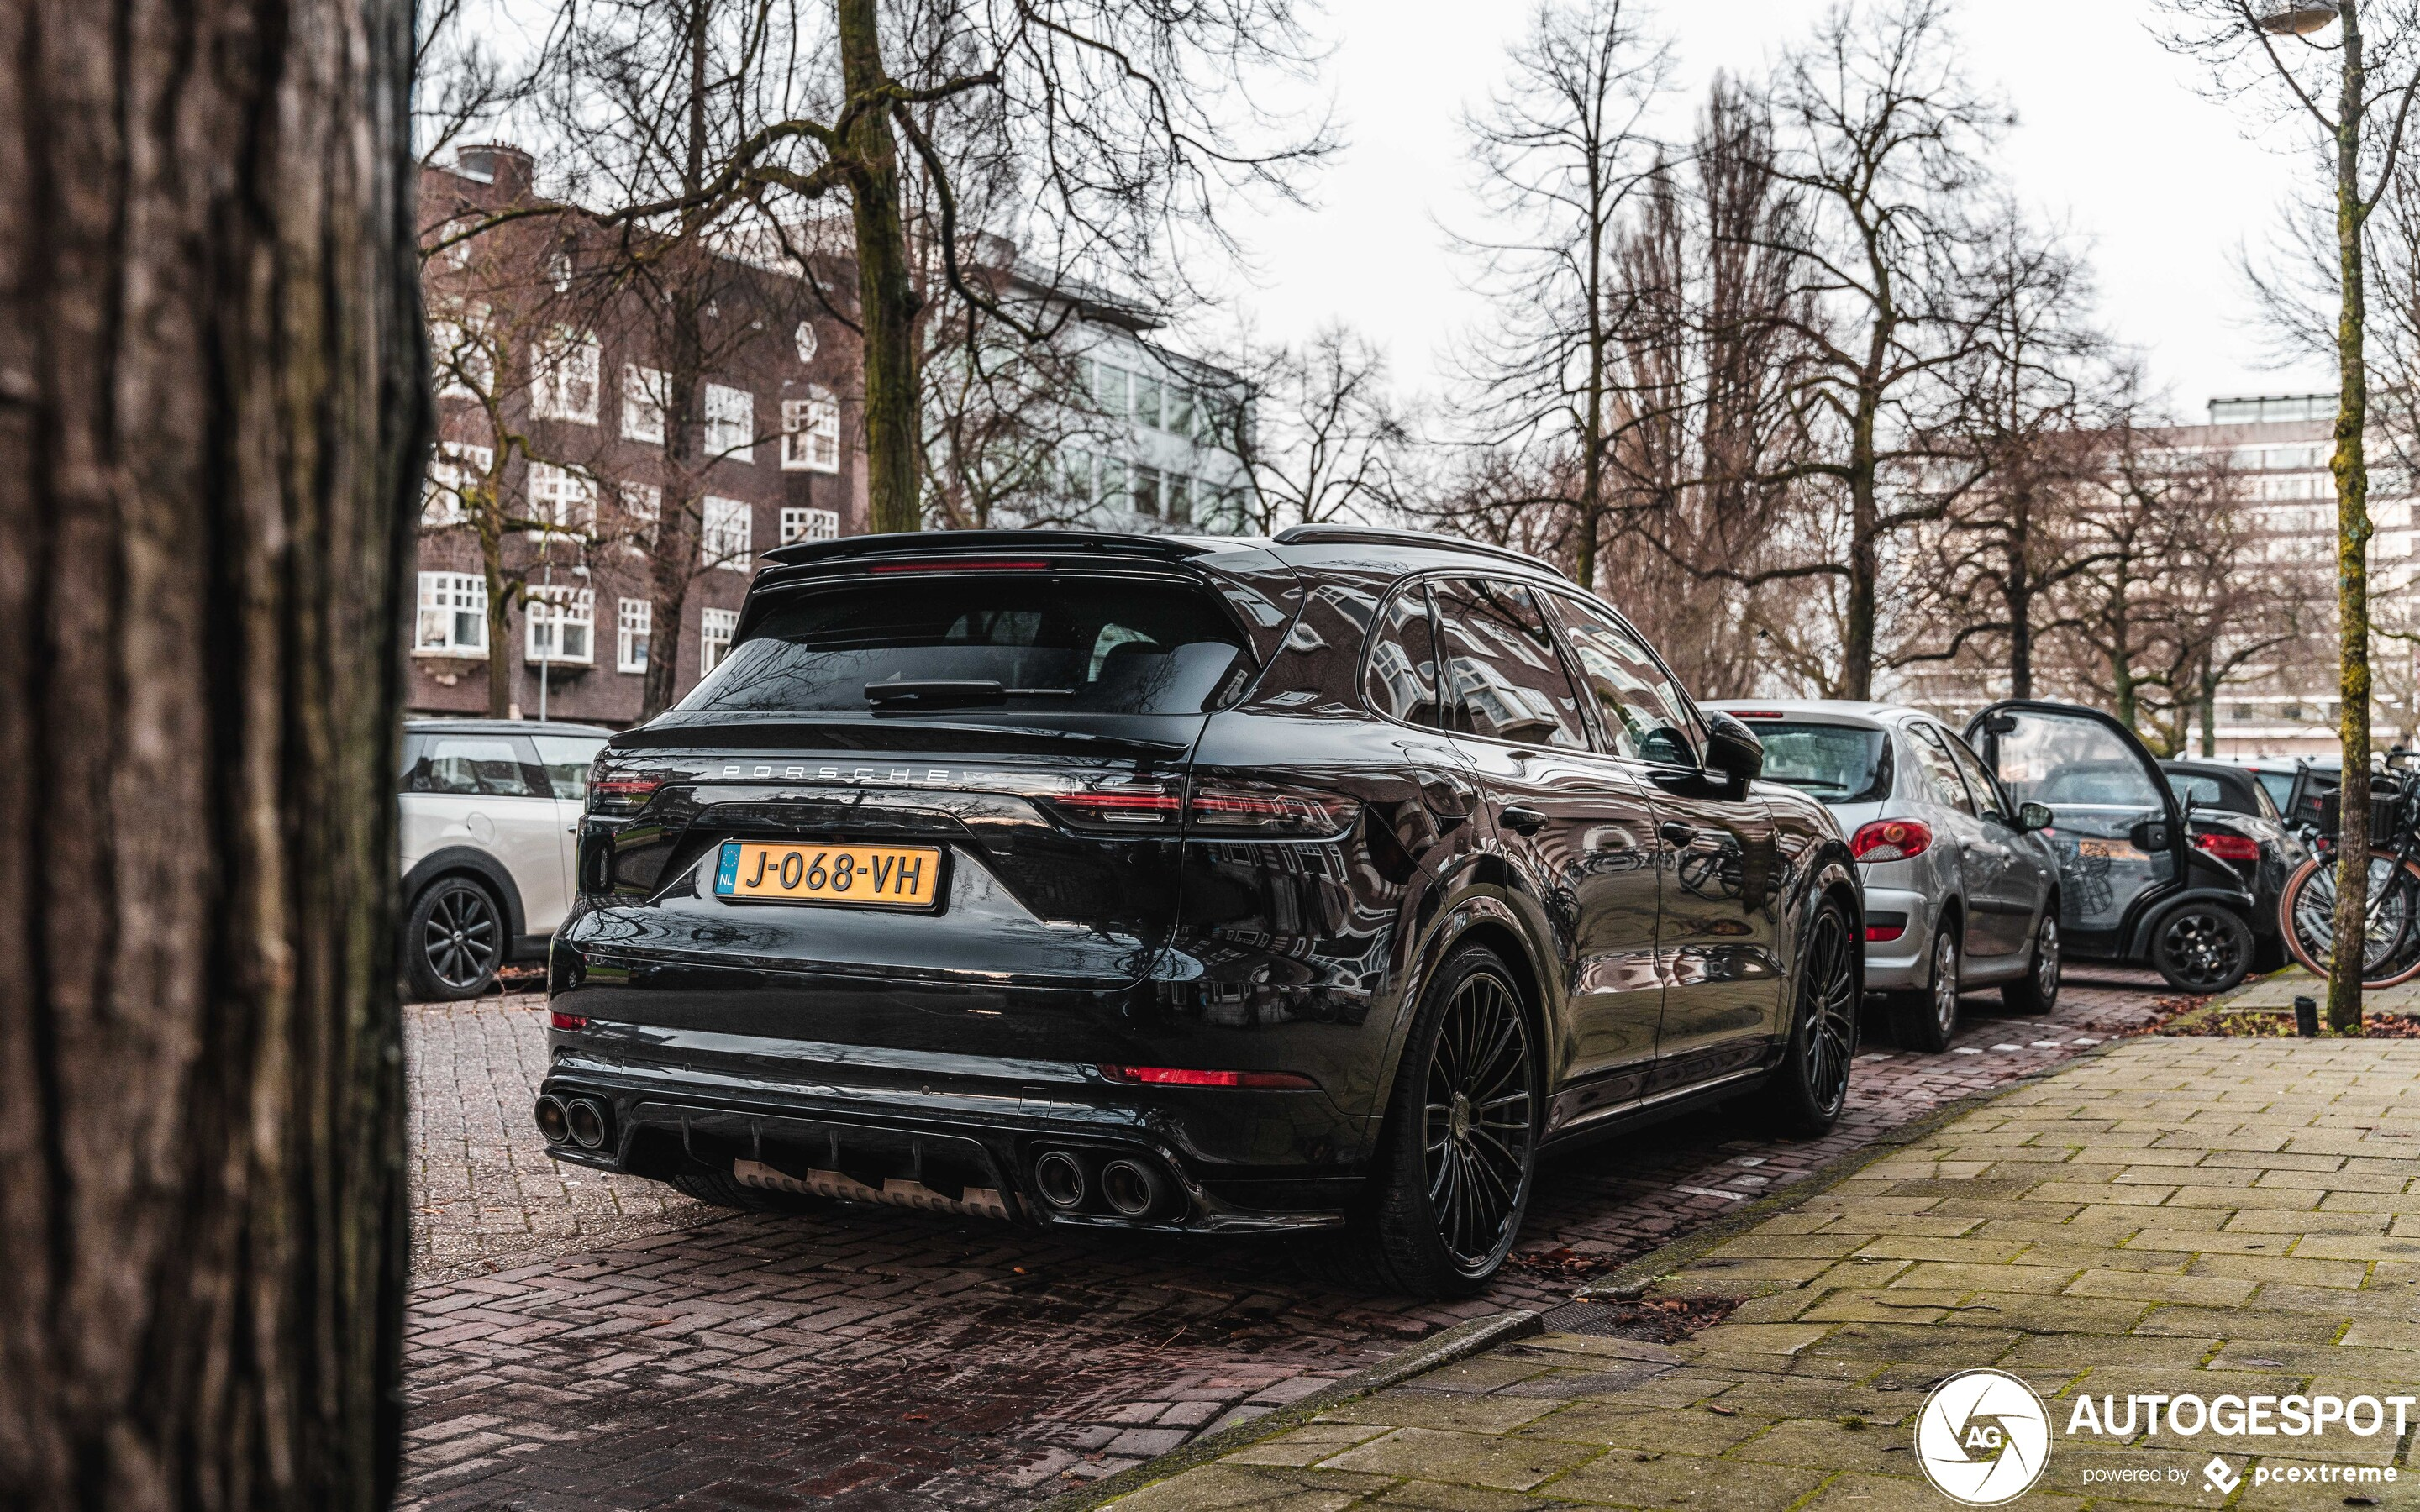 Porsche Techart Cayenne Turbo S E-Hybrid